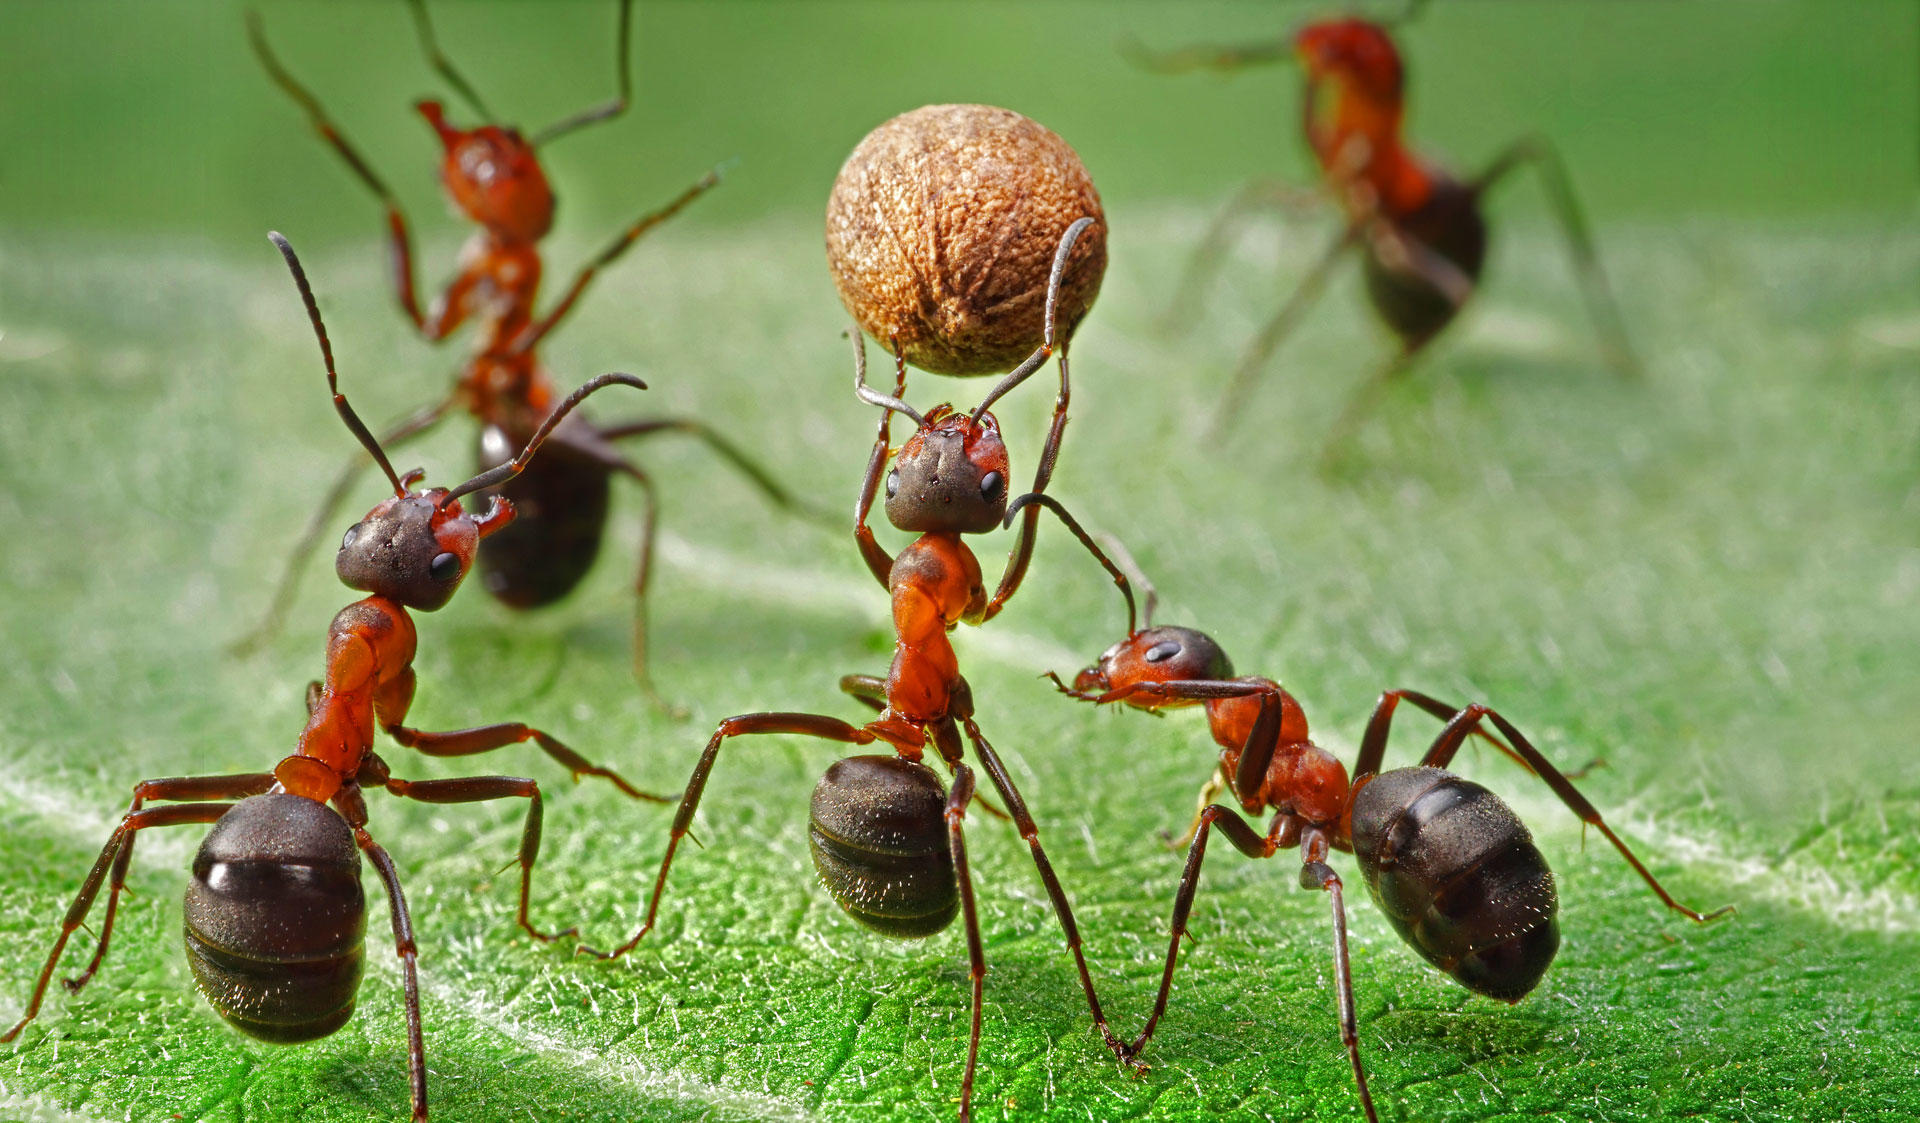 Ants carrying a seed on a green leave. Image of the Master's Programme in  Ecology and Evolutionary Biology at the University of Helsinki.